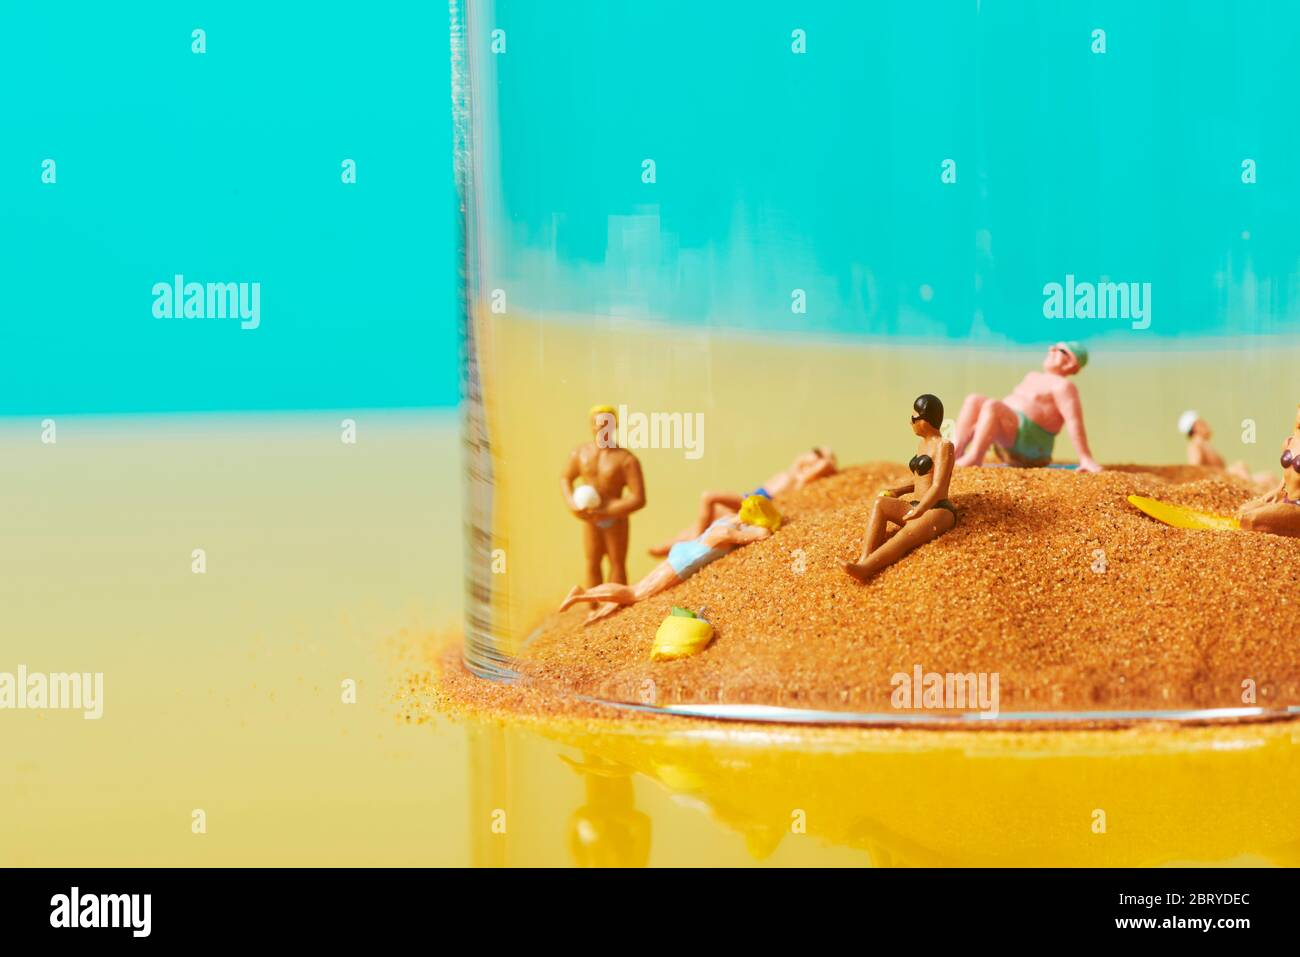 Some Miniature People Wearing Swimsuit Relaxing On The Sand In A Bell Jar Symbolizing Different Ideas Such As The Greenhouse Effect Or The Protectio Stock Photo Alamy